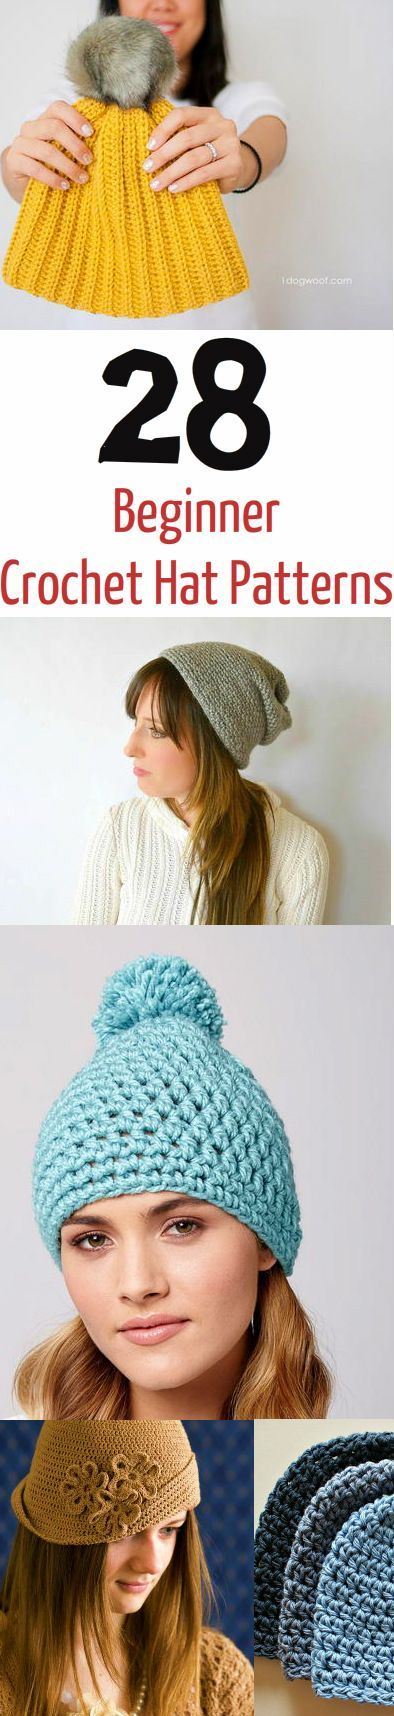 50 Beginner Crochet Hat Patterns | Gorros, Tejido y Gorro tejido